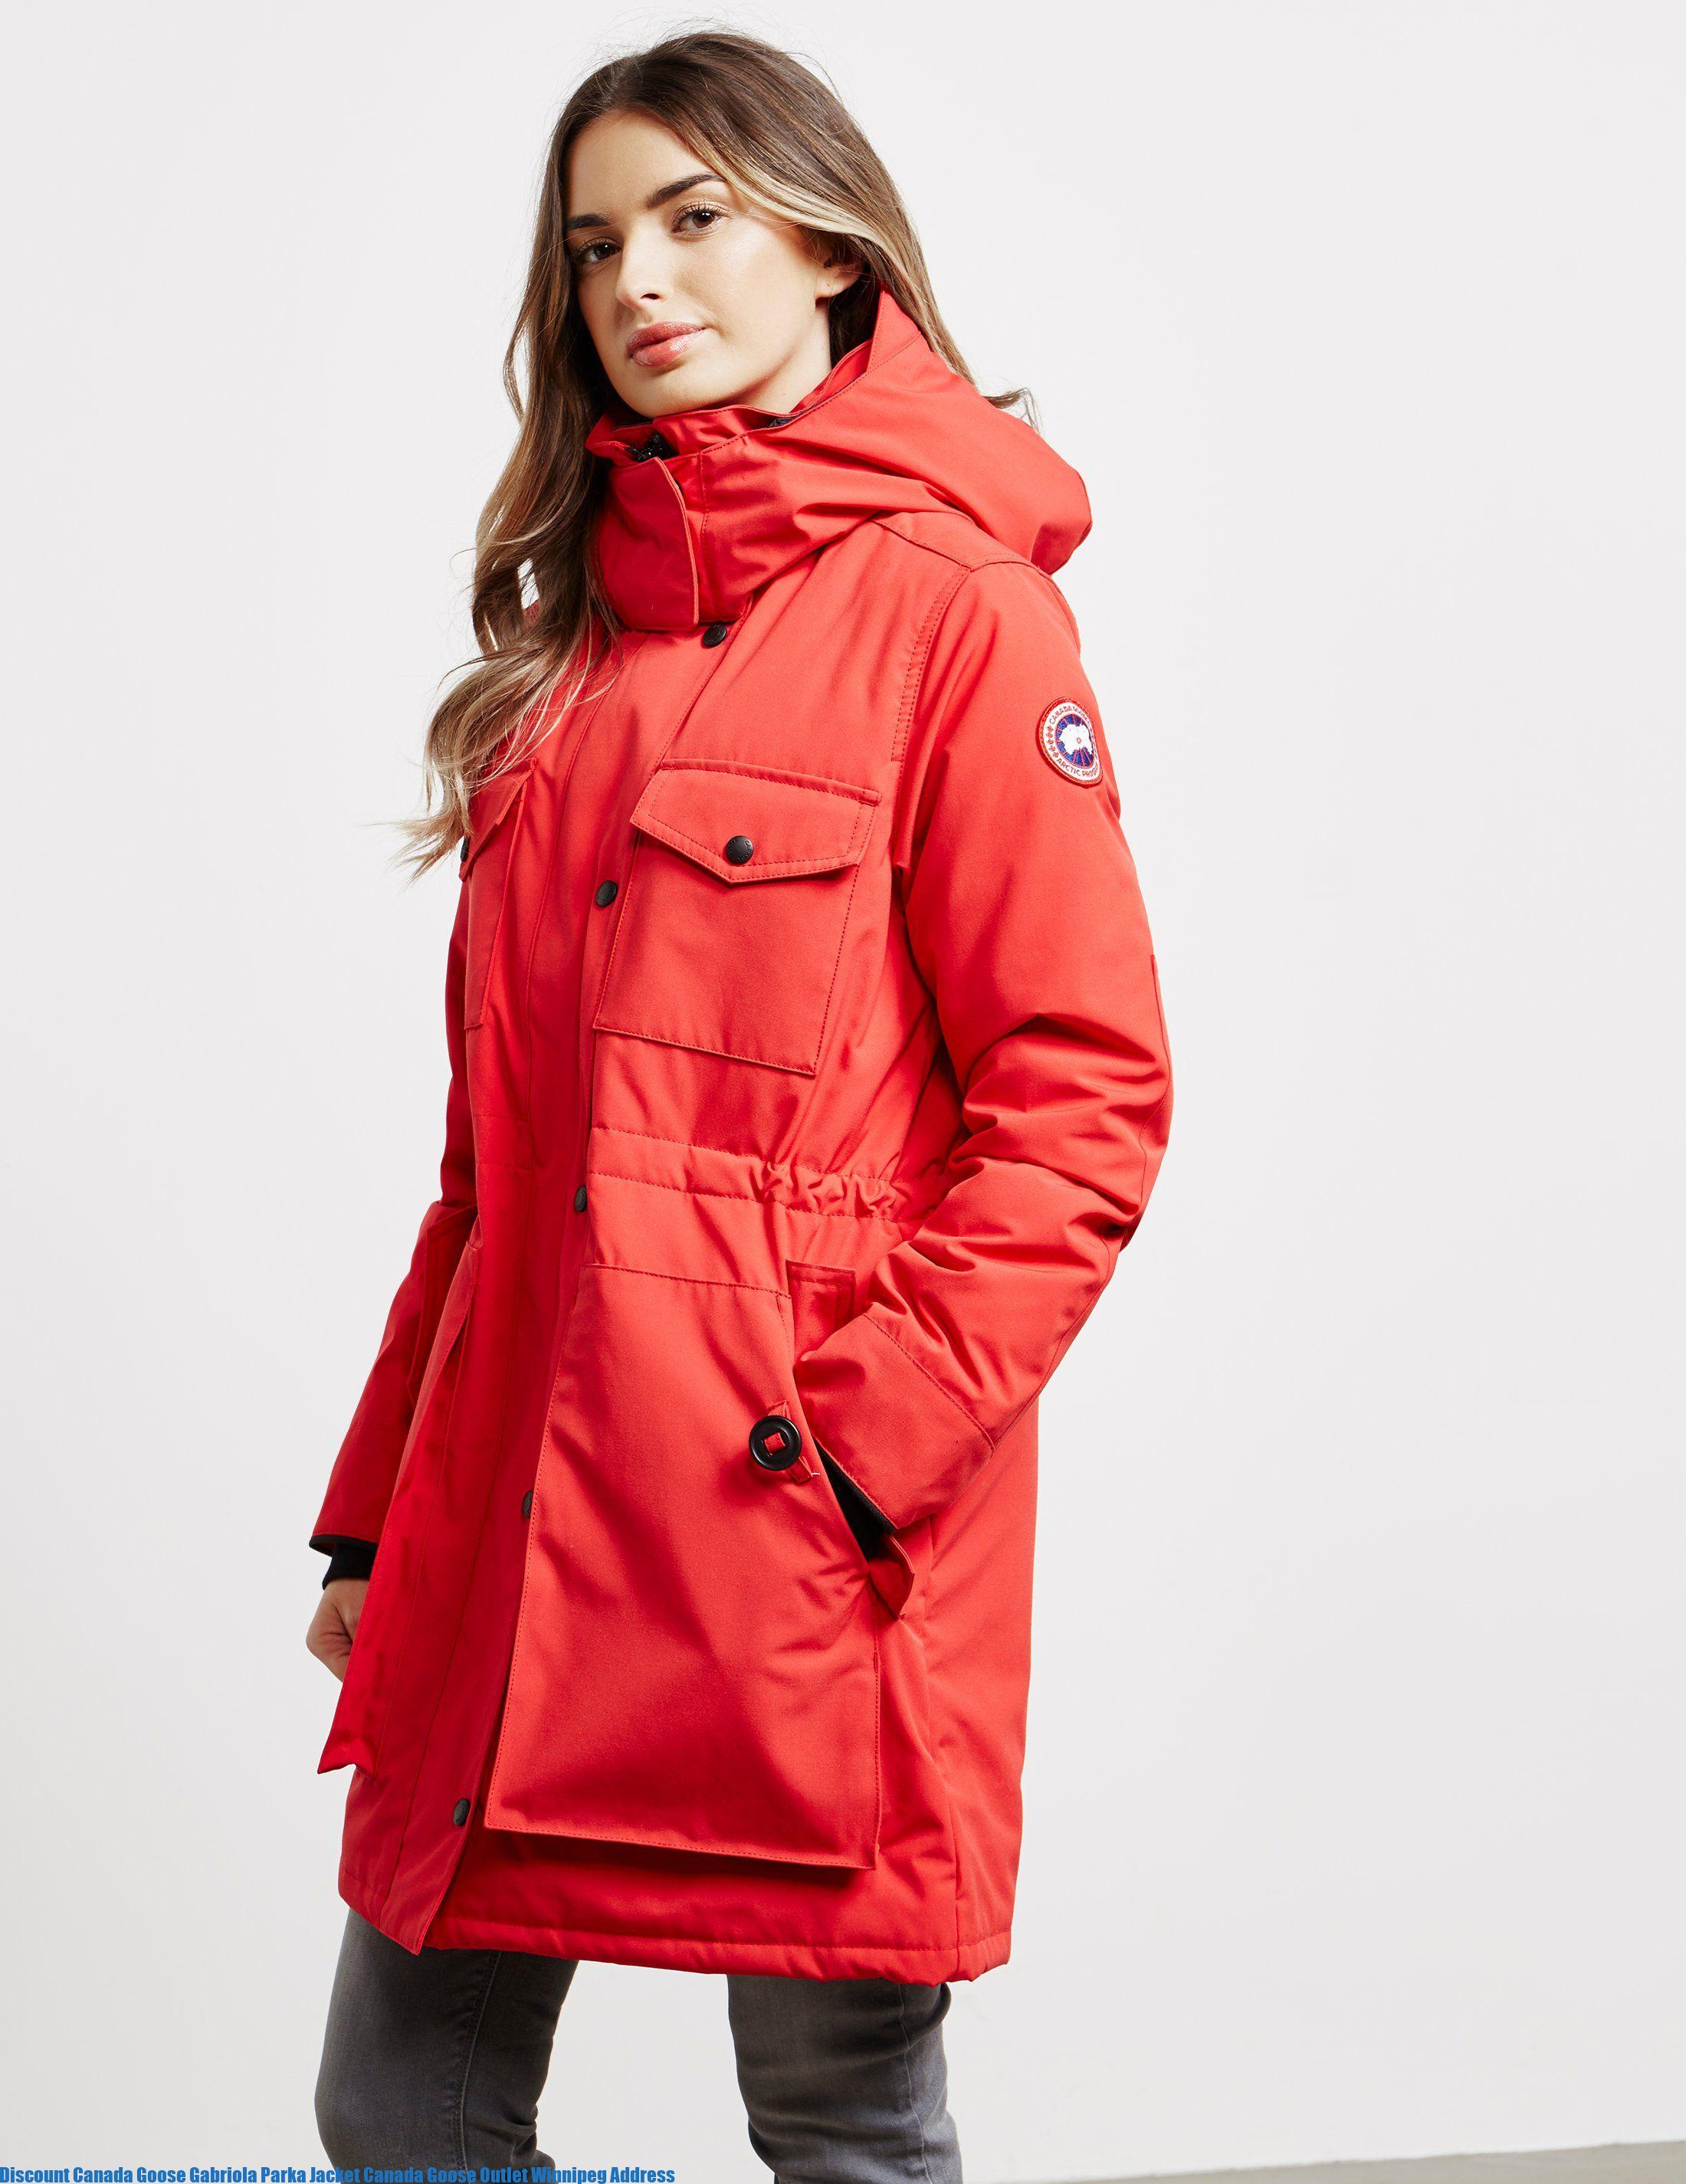 1a32de56da2 Discount Canada Goose Gabriola Parka Jacket Canada Goose Outlet Winnipeg  Address